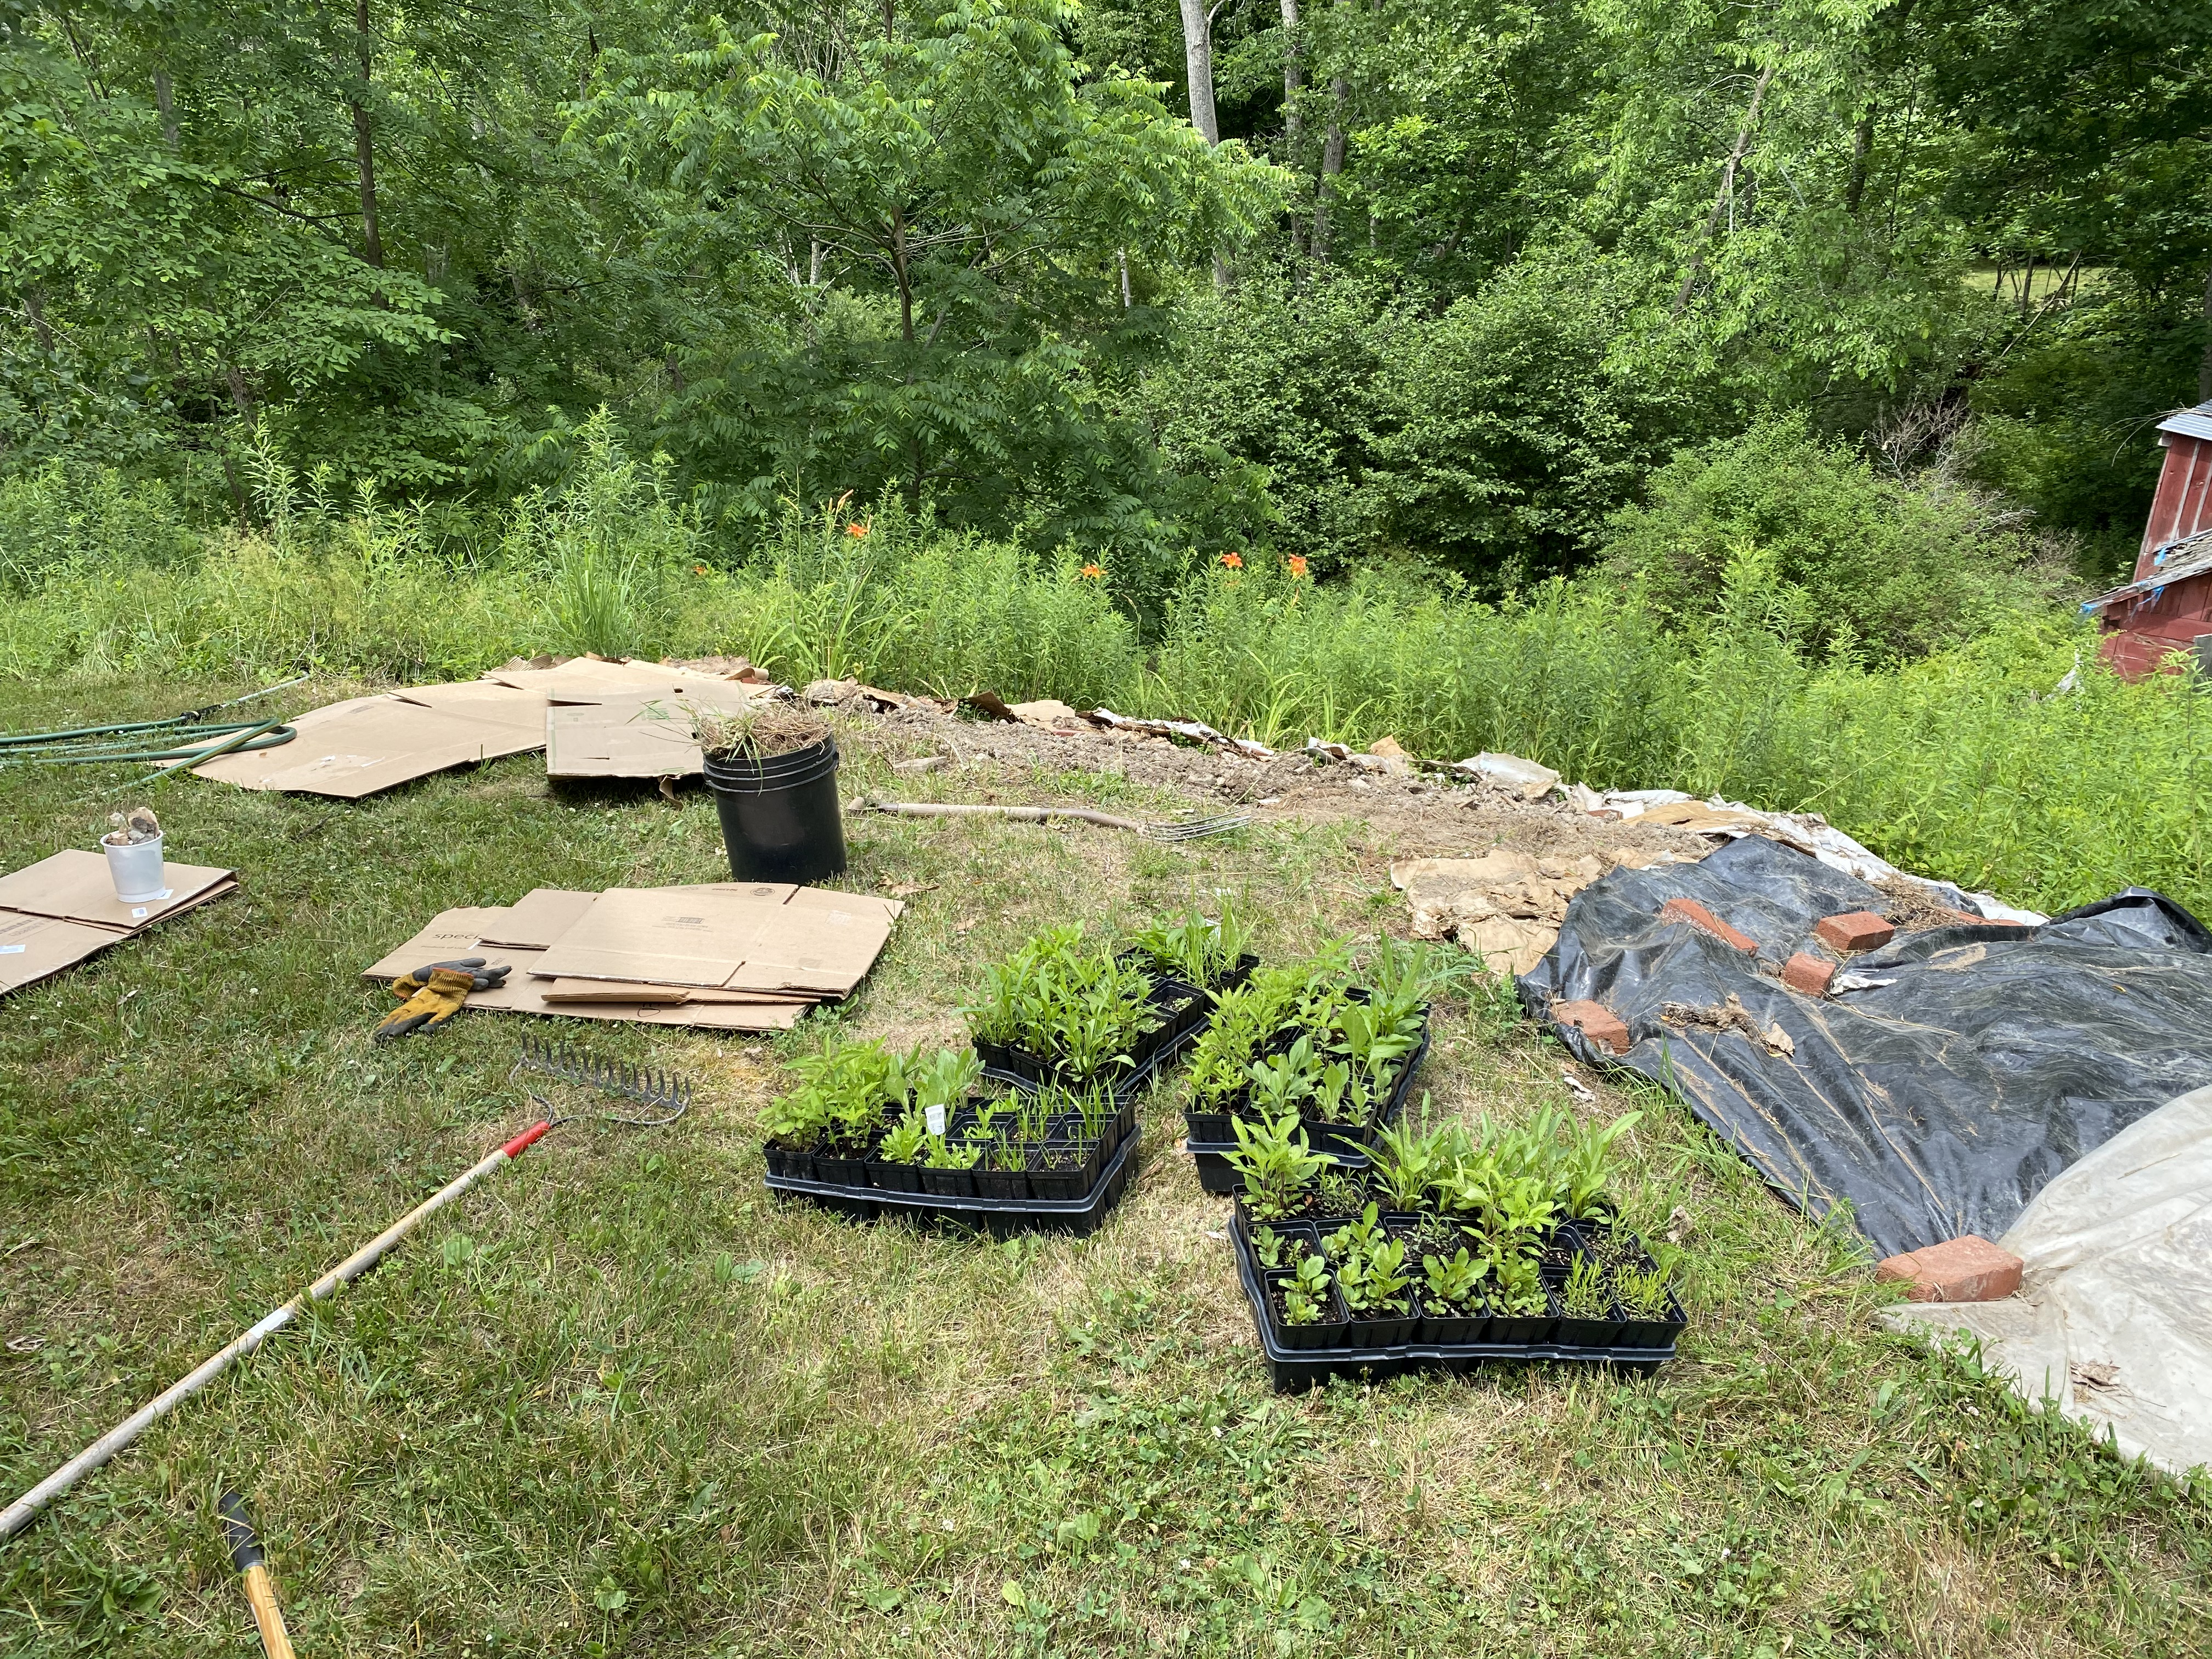 cardboard, trays of plants, and tools next to an in progress garden bed